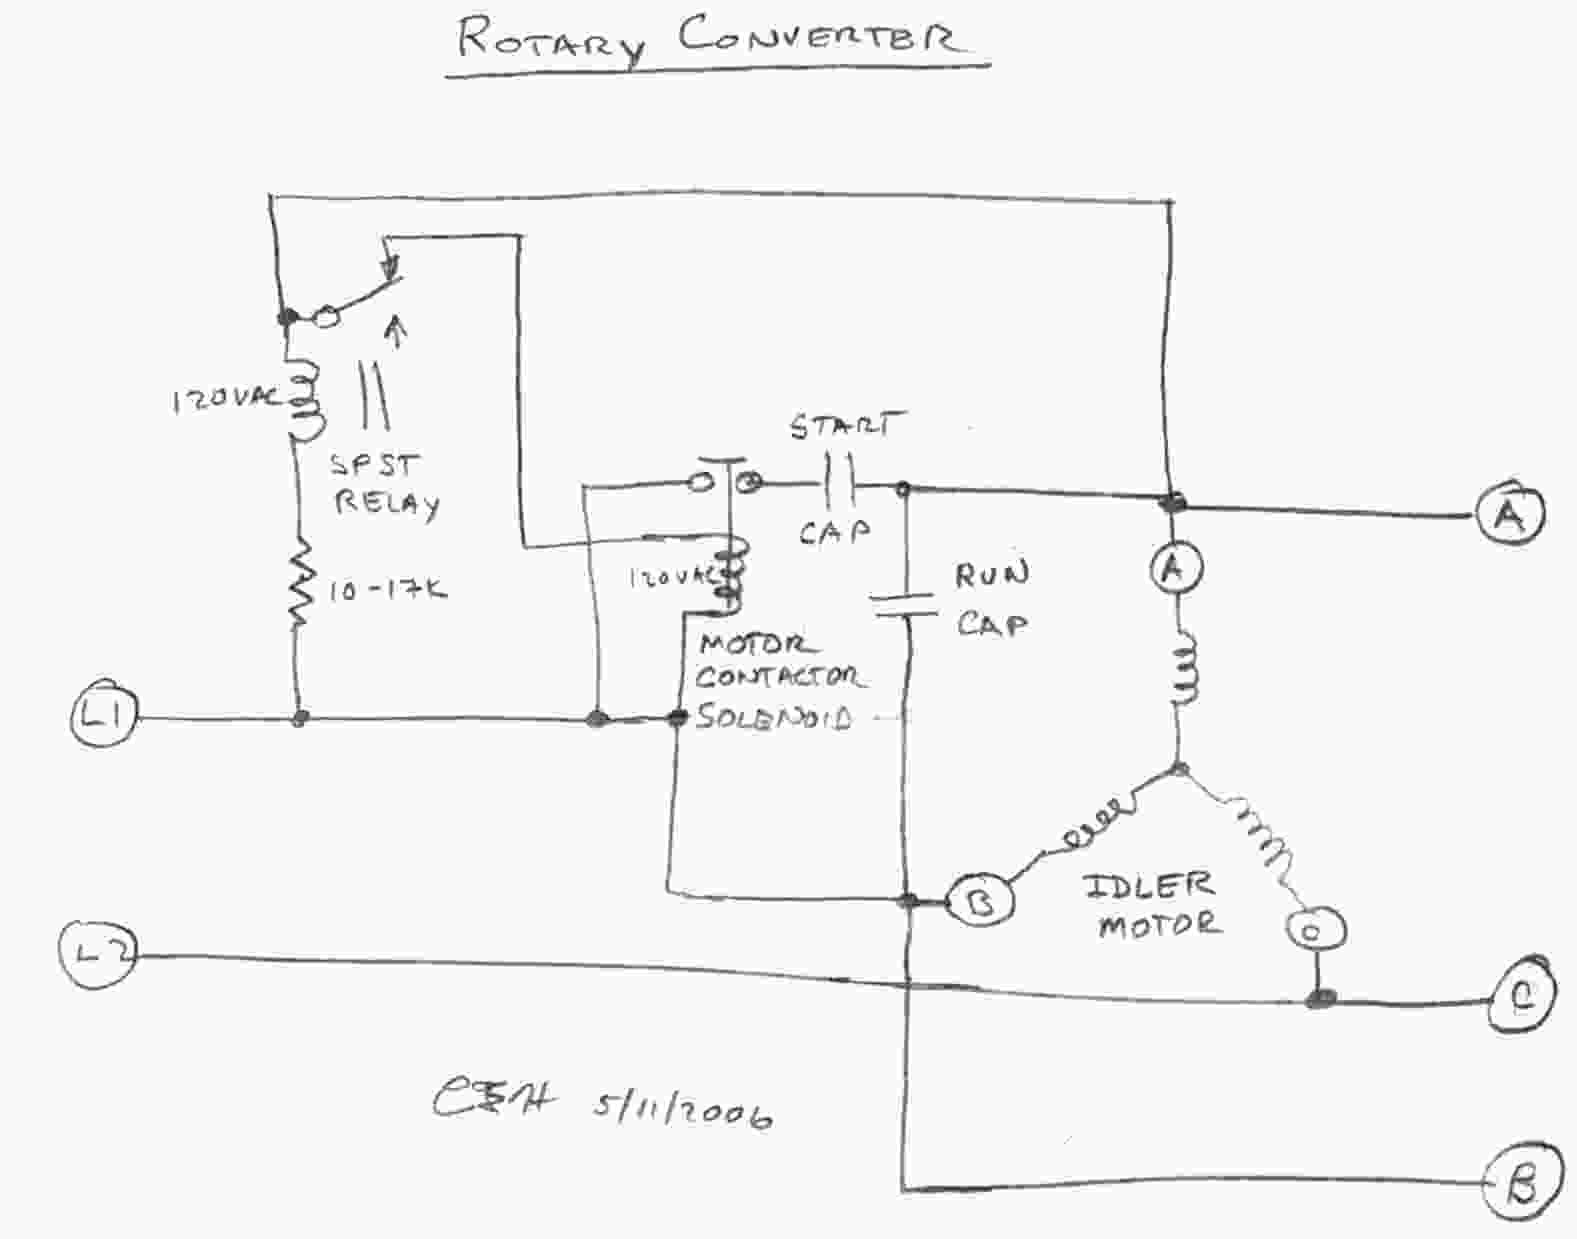 Nest 3 Wiring Diagram Free Dpdt Relay Schematic As Well Boat Electrical Diagrams Wireless Thermostat New Wellread